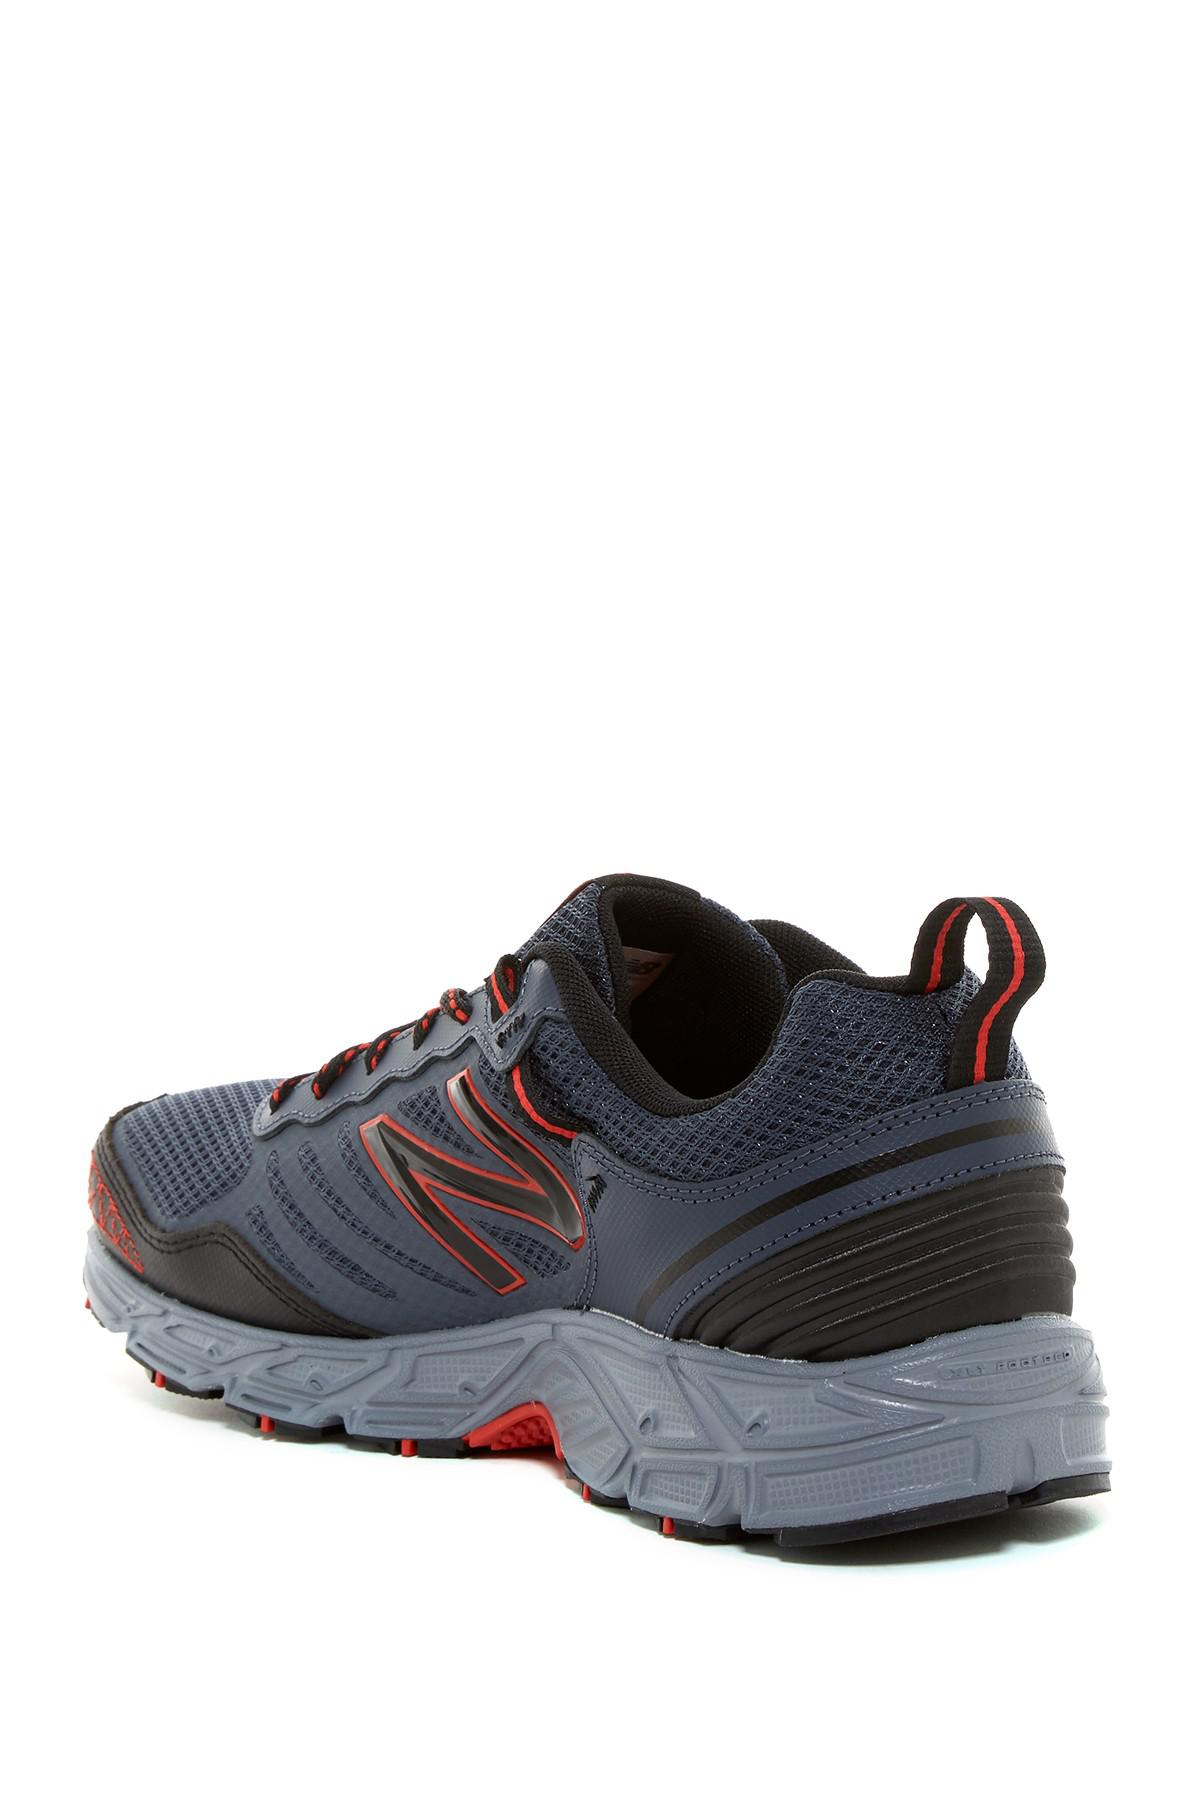 Lyst - New Balance Lonoke Trail Running Sneaker in Gray for Men